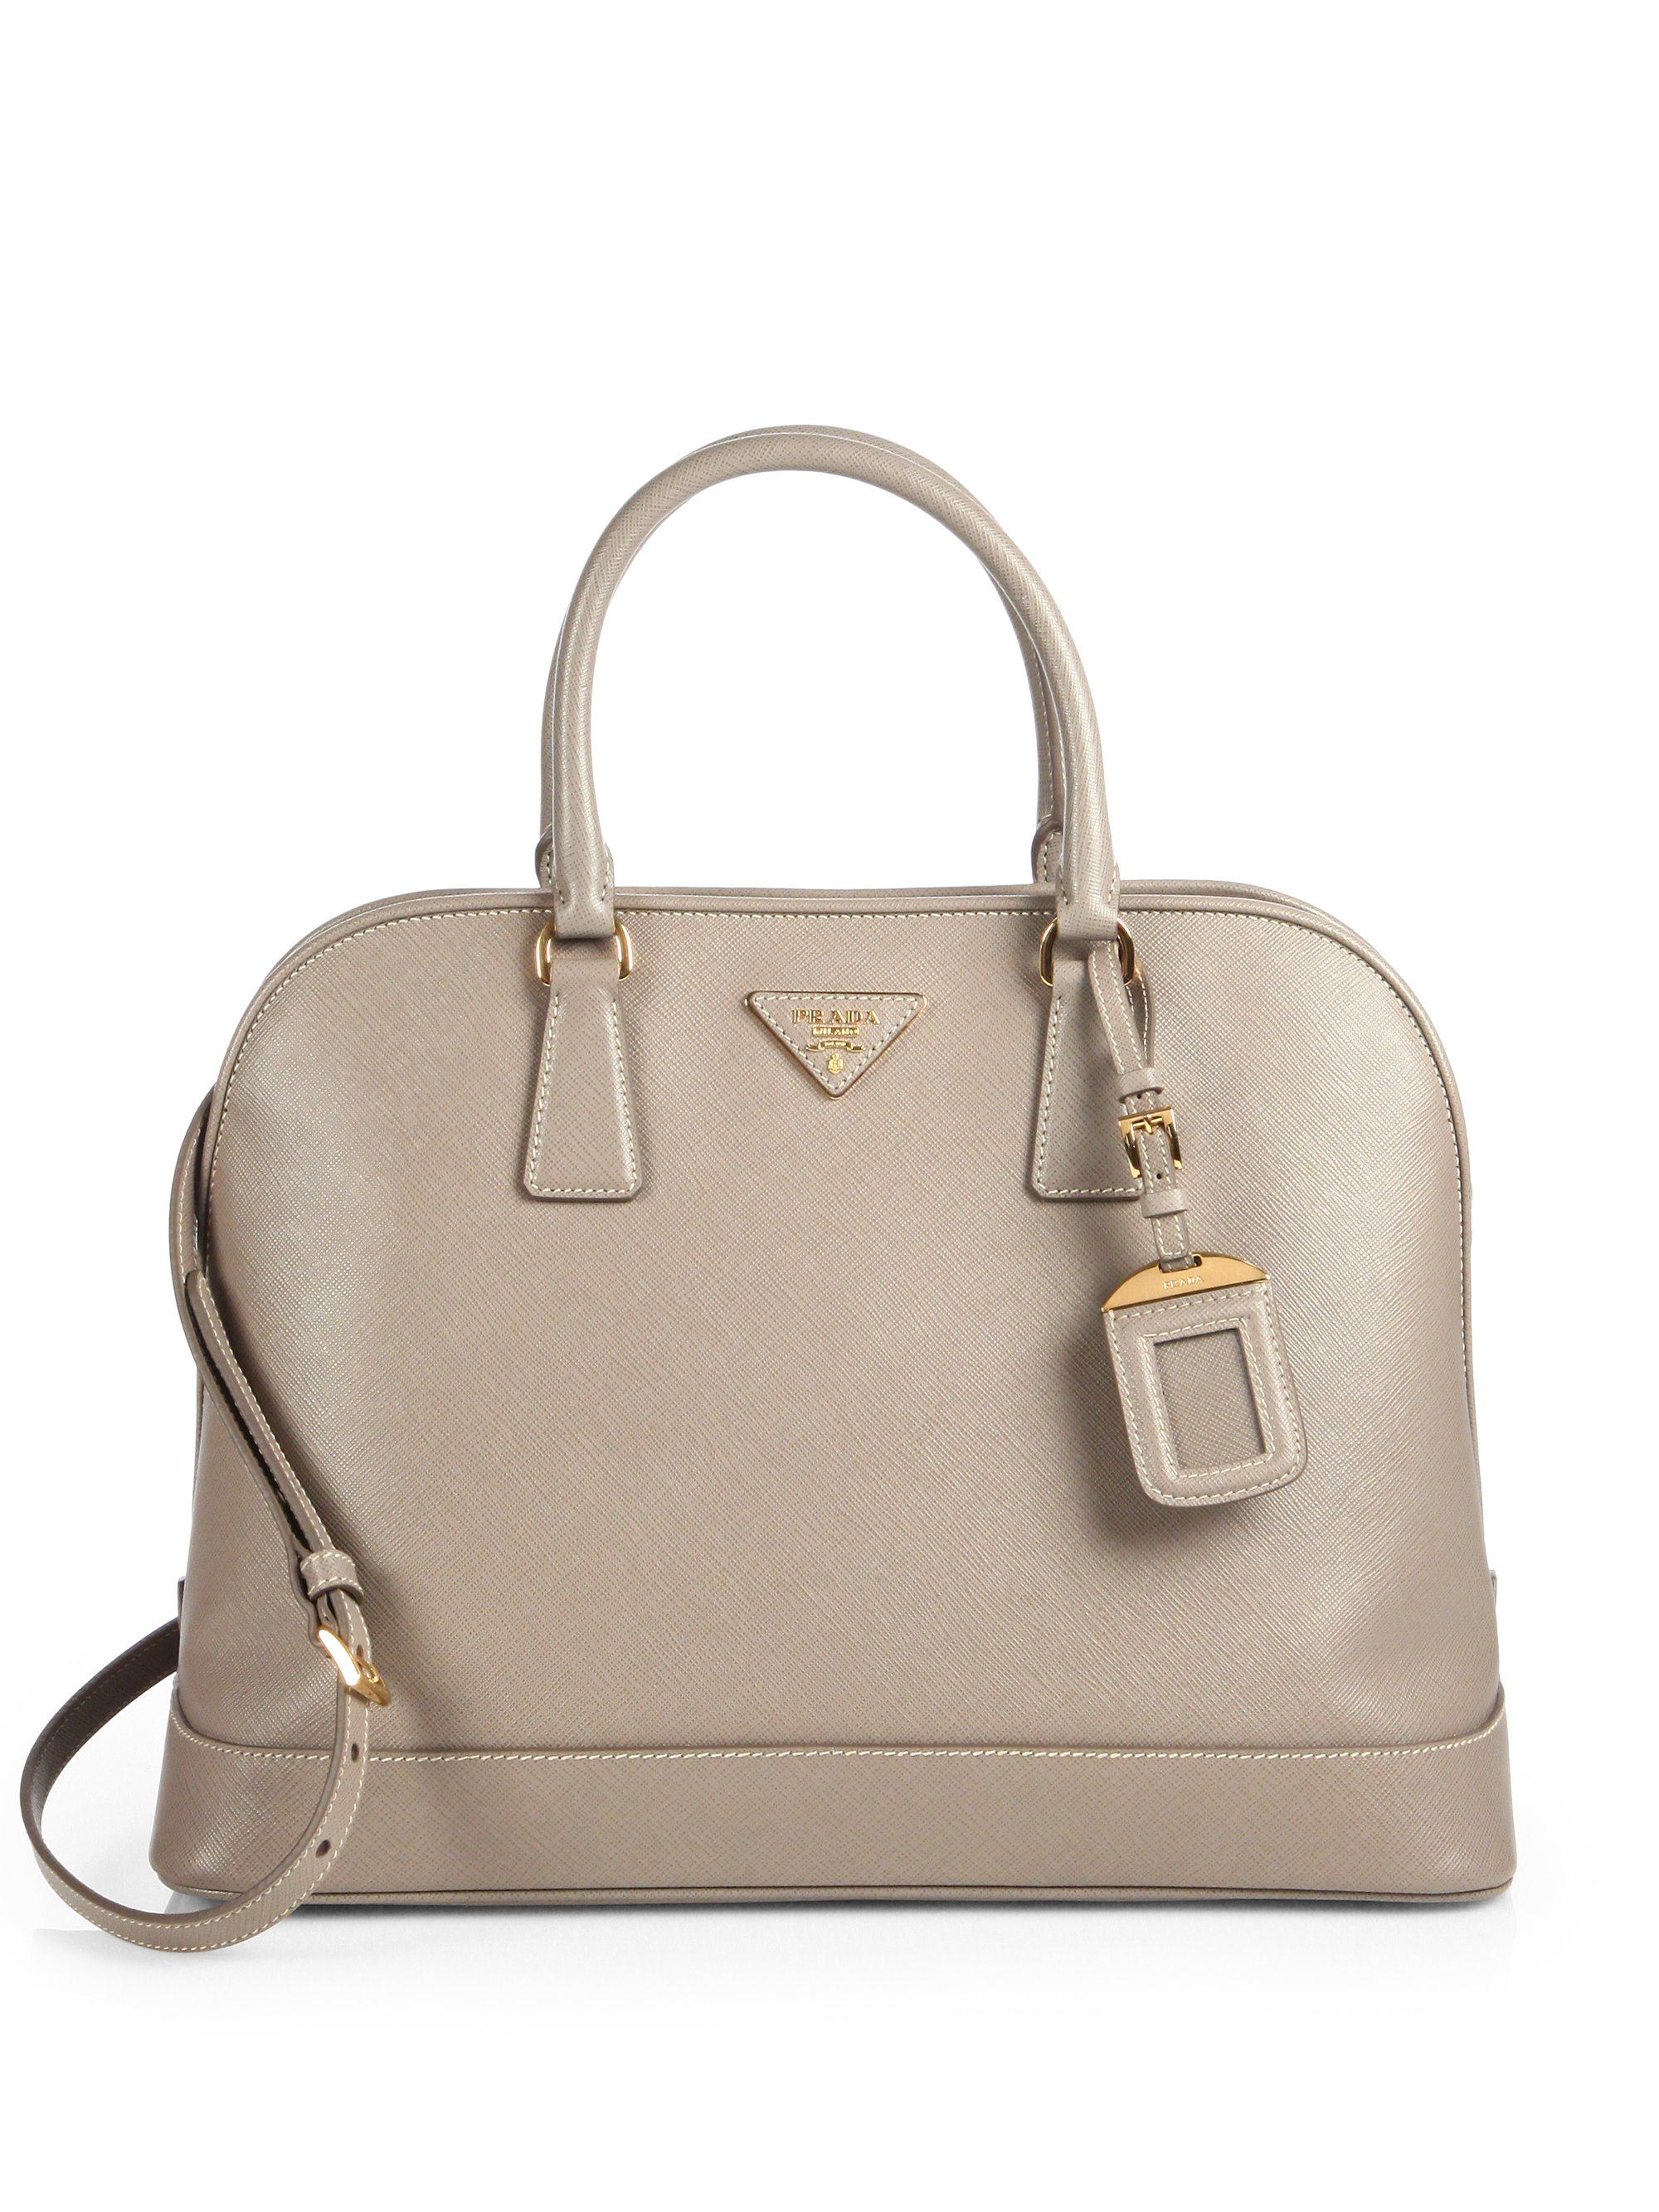 807a2361e59f Lyst - Prada Saffiano Open Promenade Bag in Natural